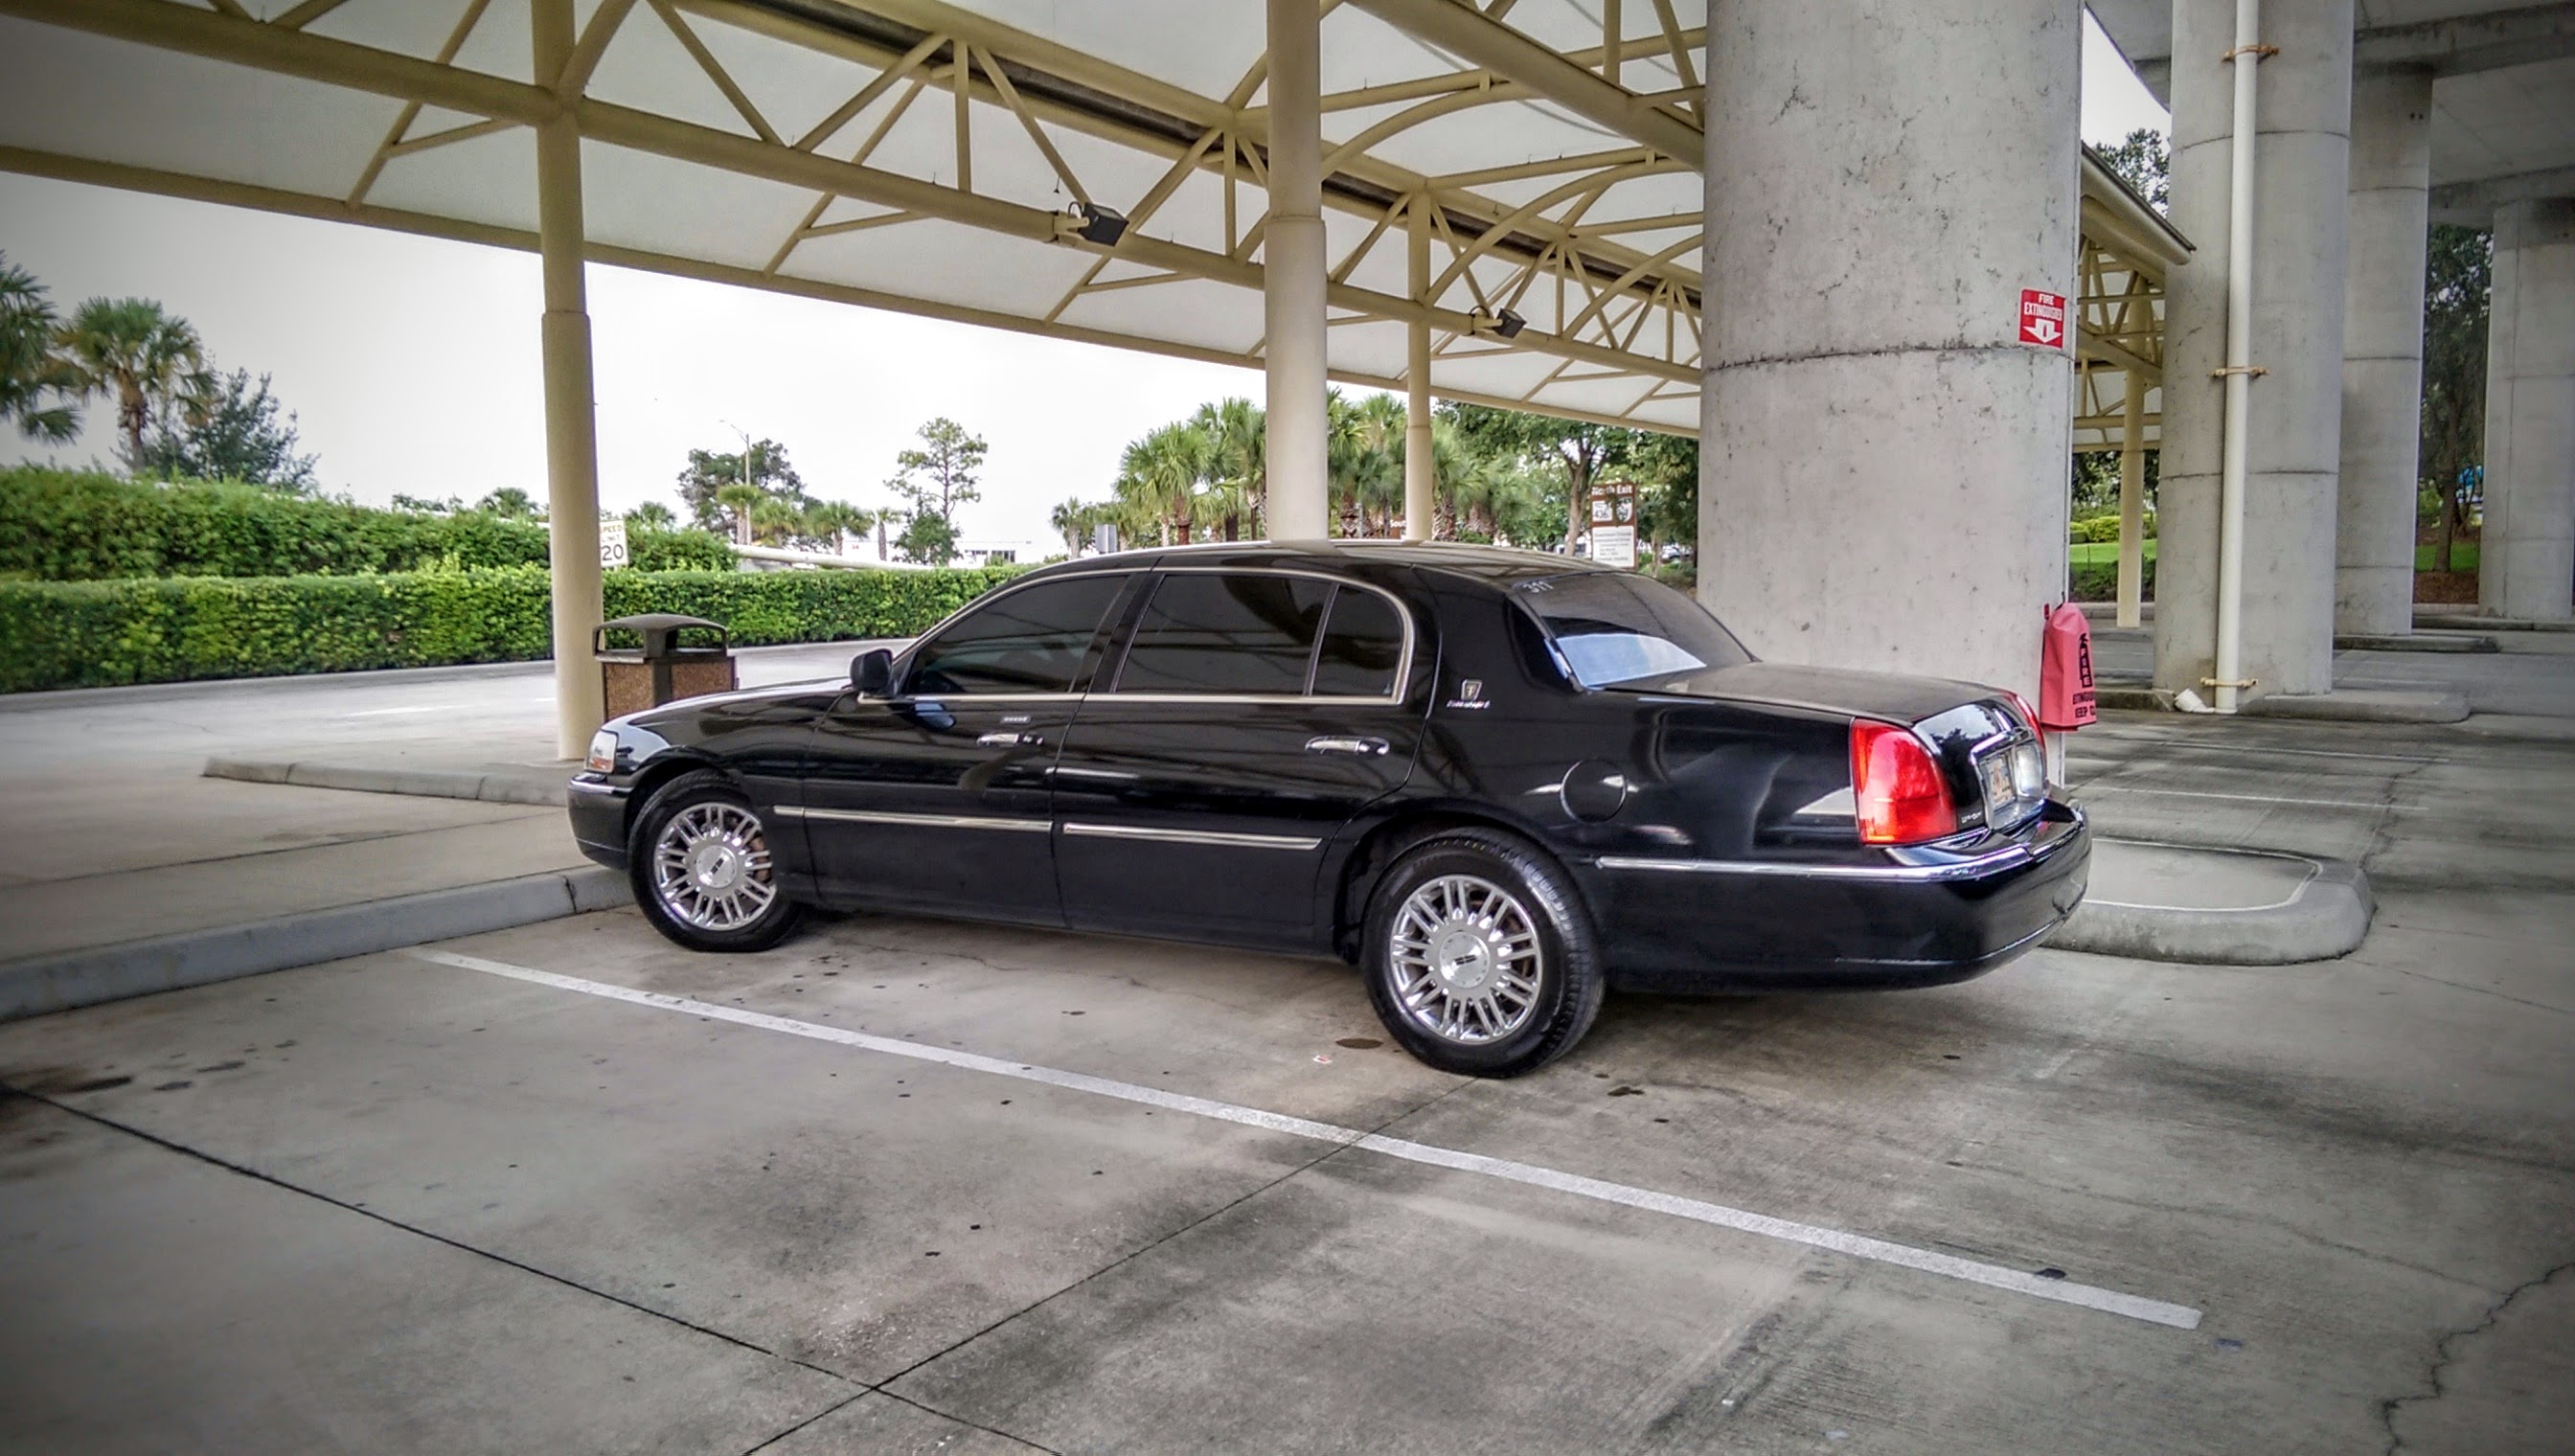 Orlando Airport Transportation